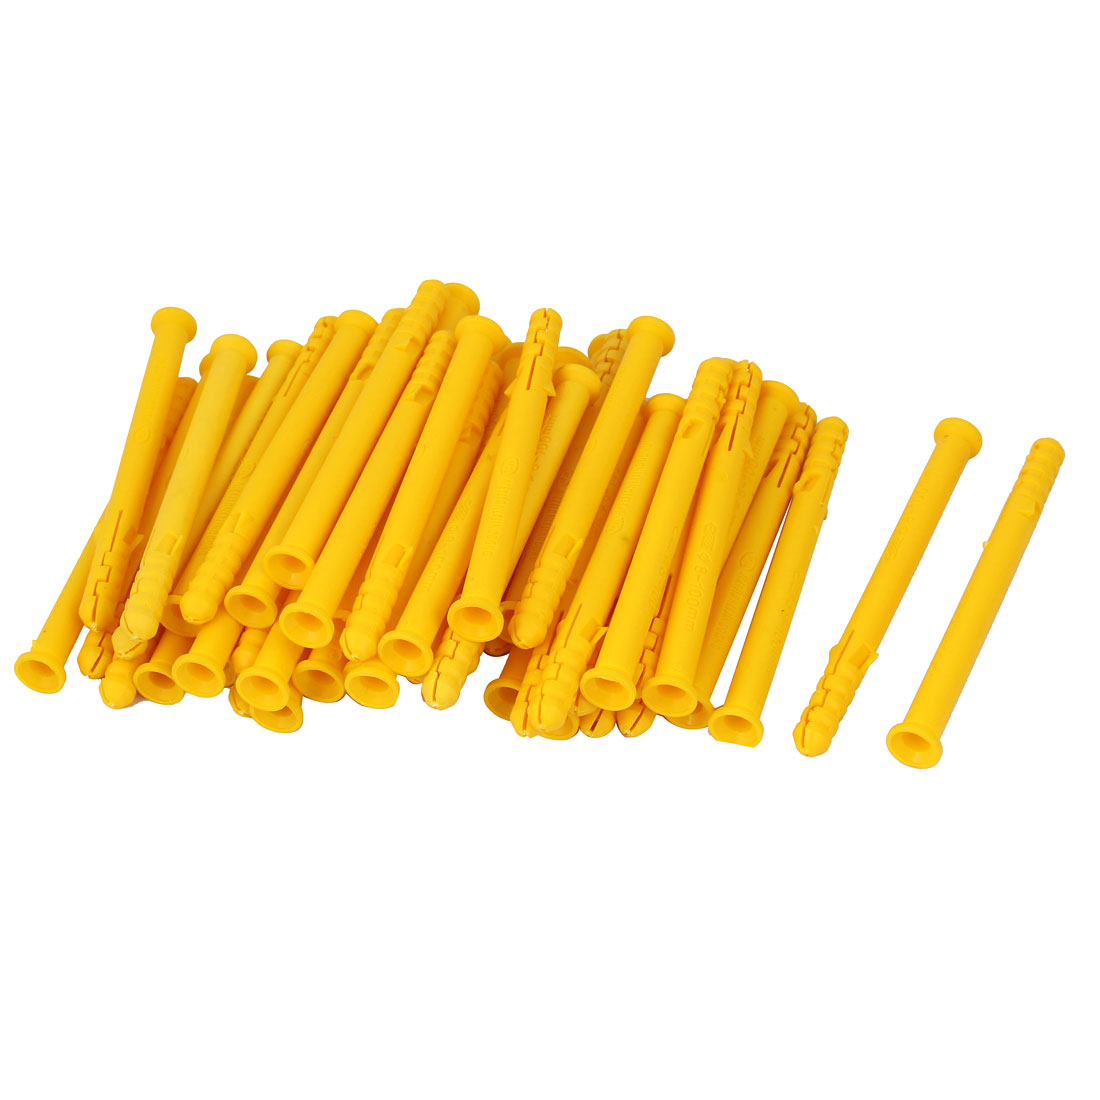 Lag Screws 8mm Dia Plastic Expansion Nails 100mm Long Yellow 50pcs